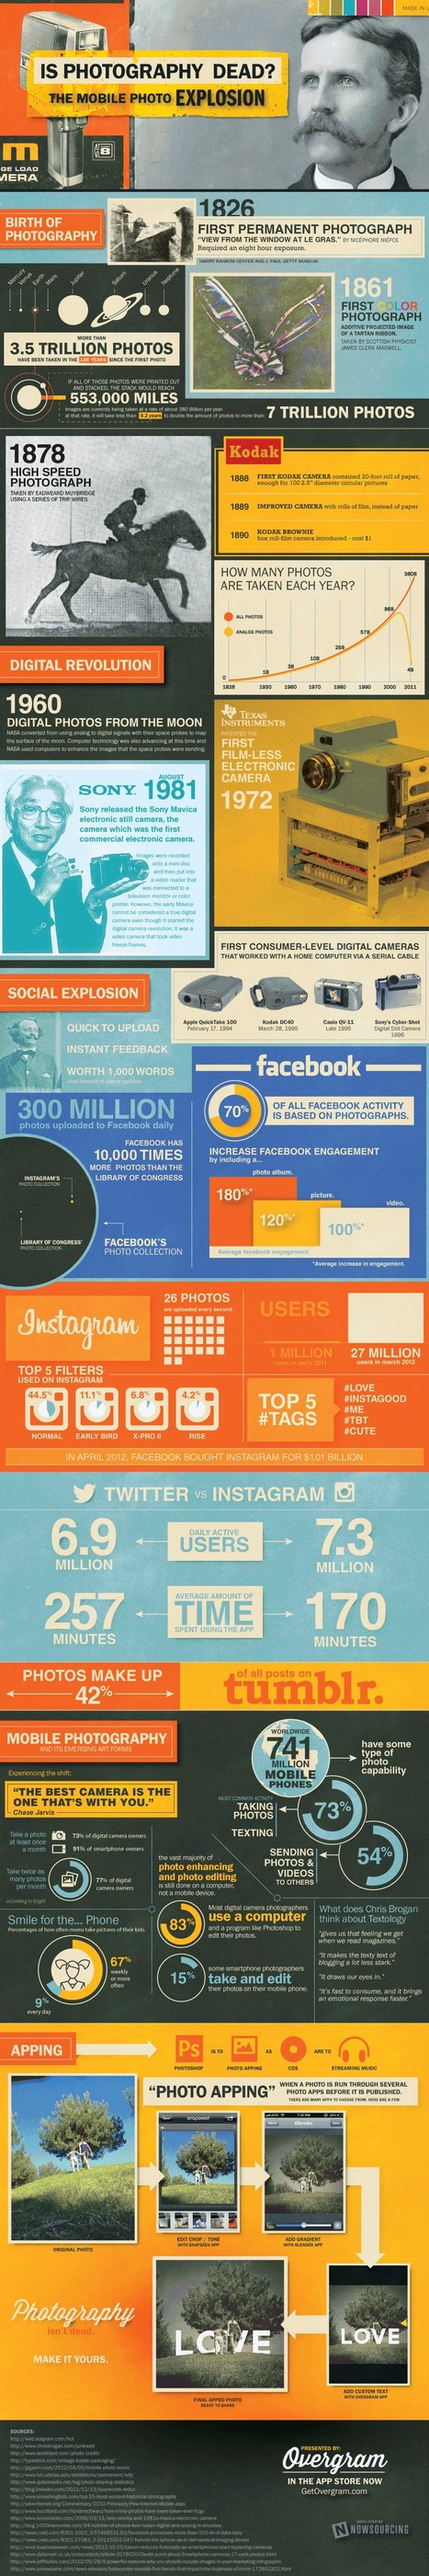 The Mobile Social Photo Explosion [INFOGRAPHIC] | Social Mercor | Scoop.it